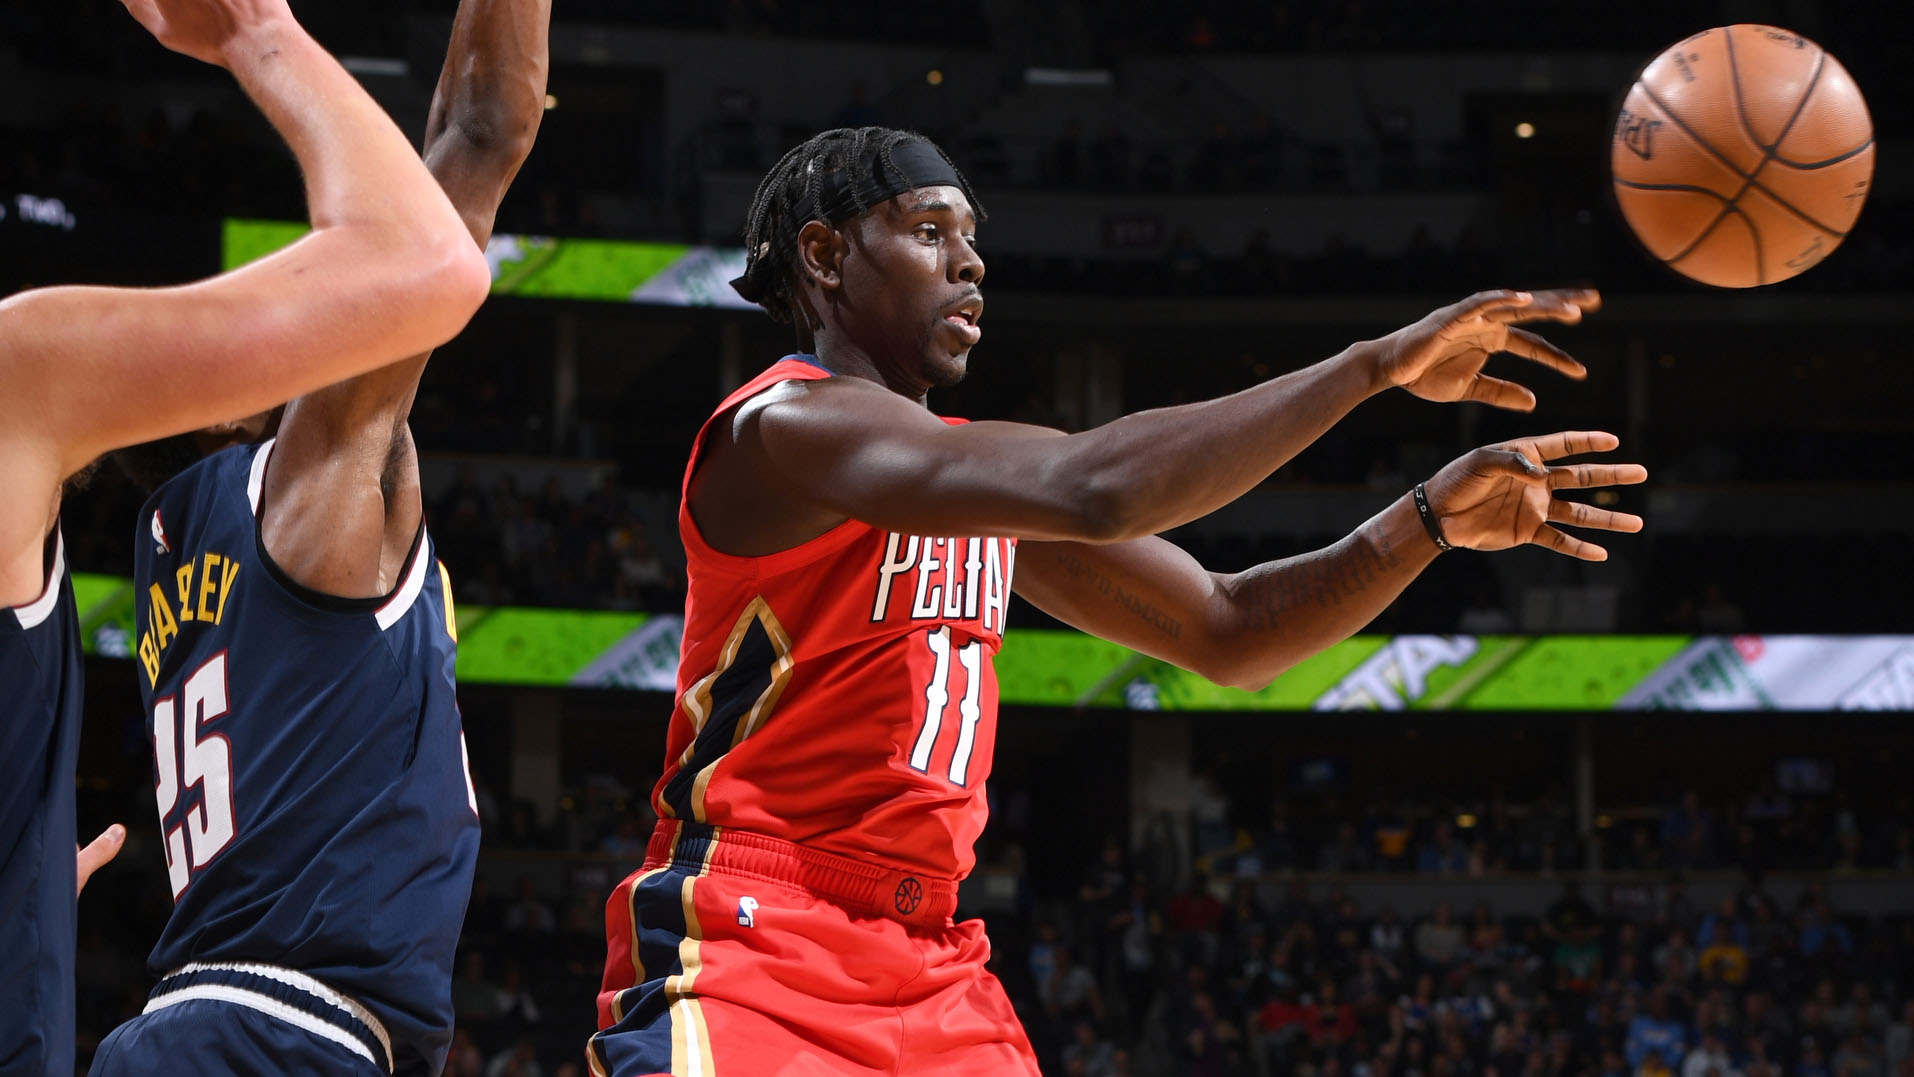 NBA Assist Week: Best Jrue Holiday Assists from the 2018-19 Season